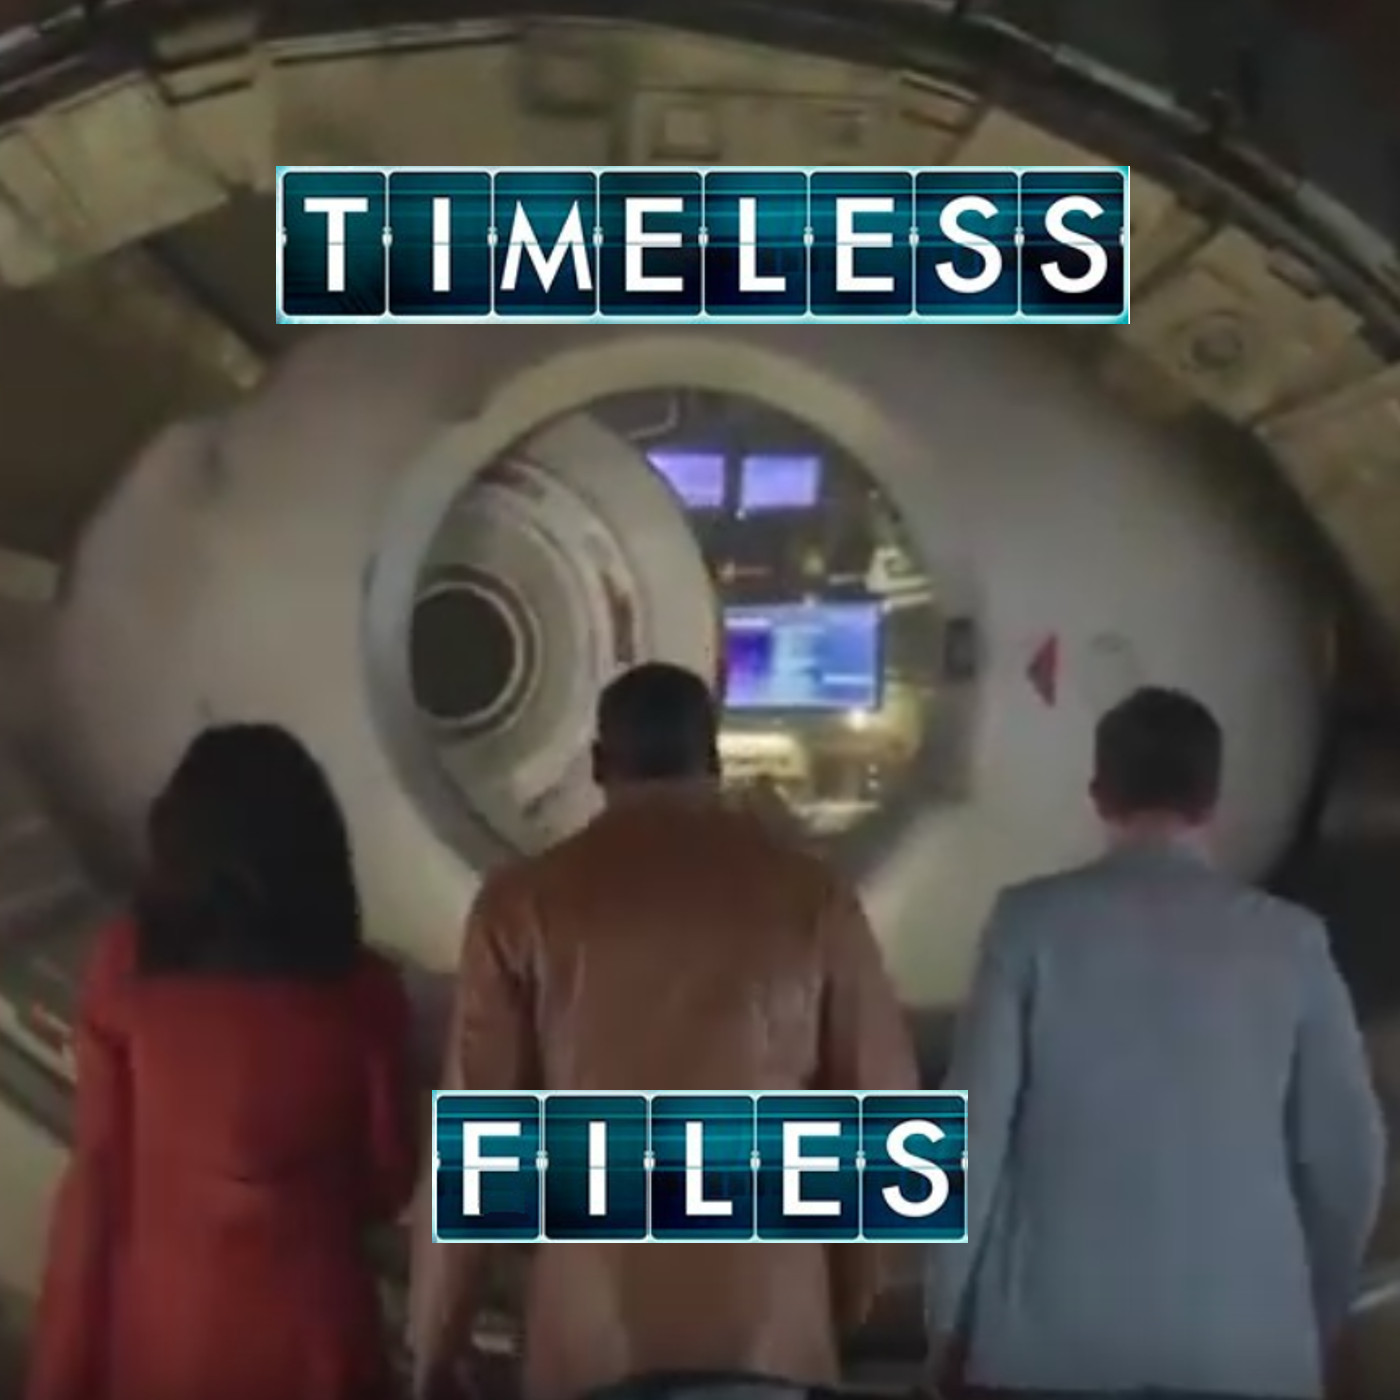 Timeless Files